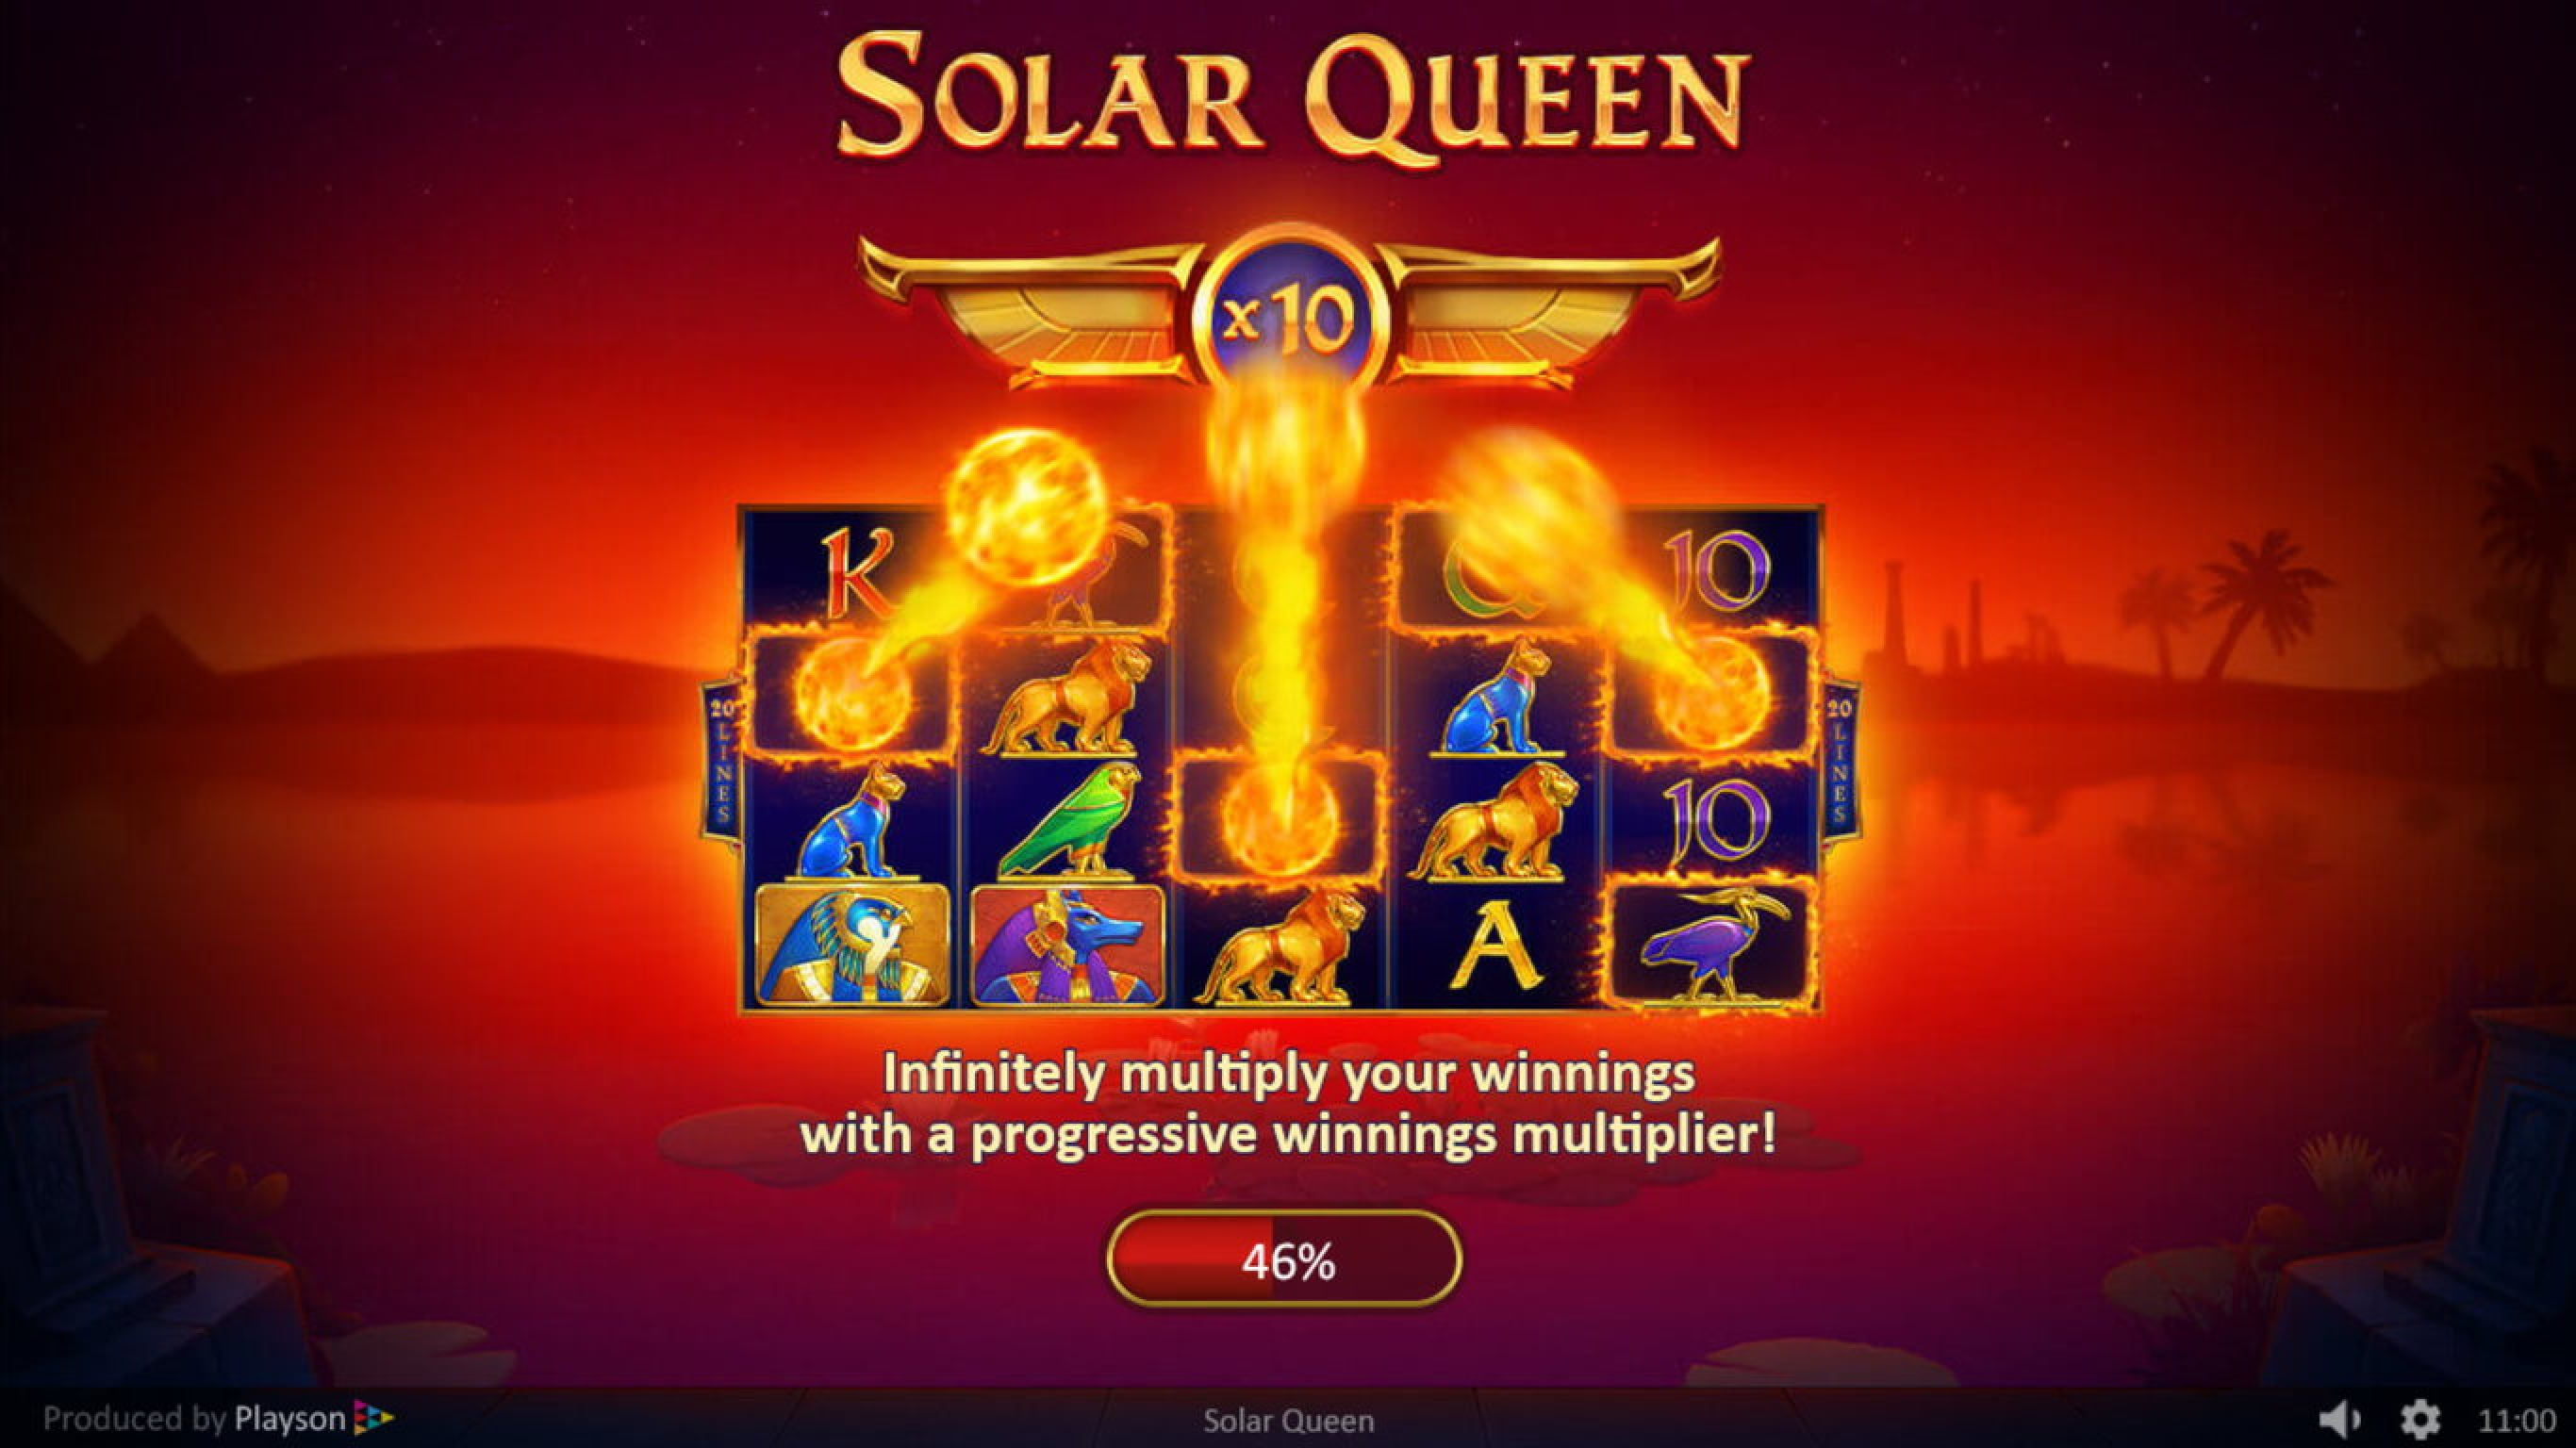 The Solar Queen Online Slot Demo Game by Playson